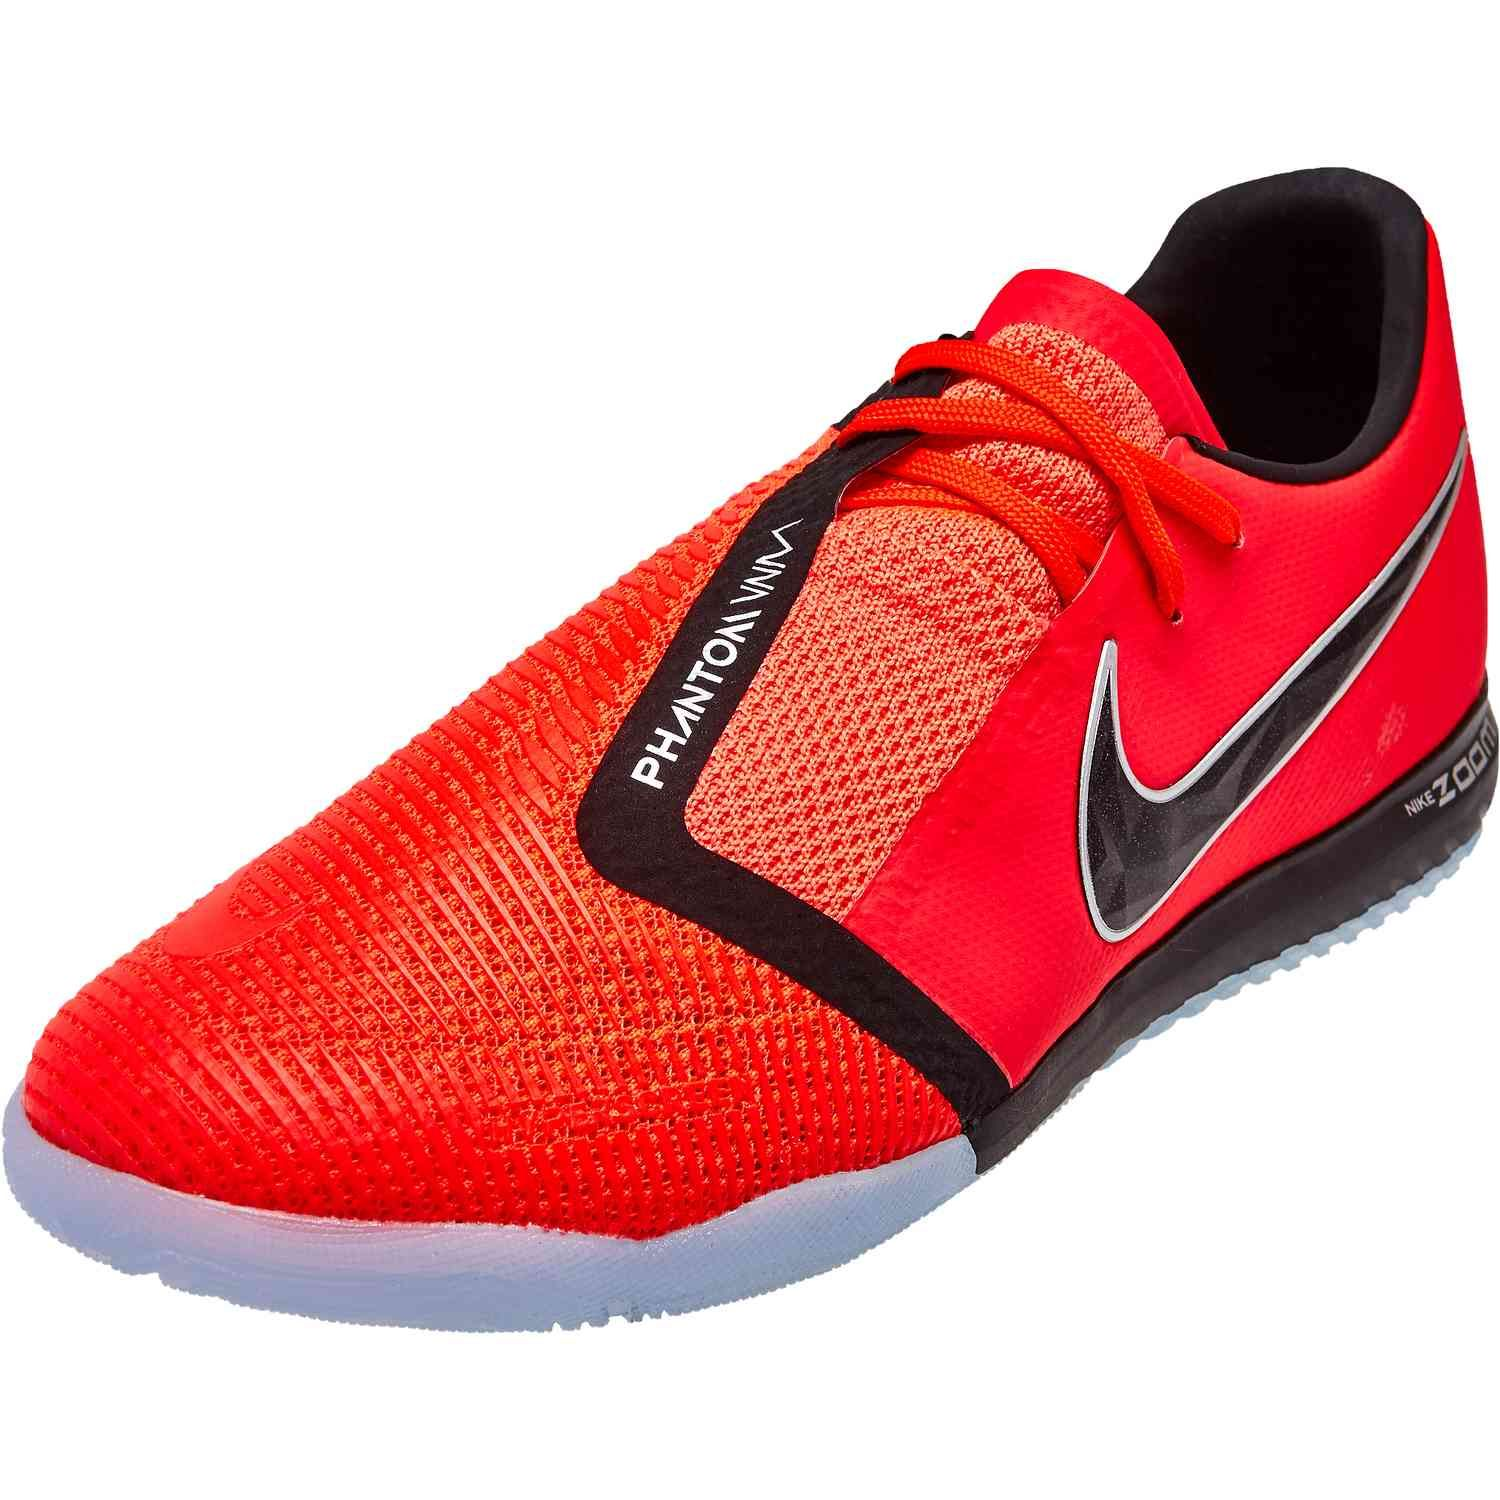 008b86490 Shop for the Game Over pack Nike PhantomVNM Pro indoor soccer shoes from  SoccerPro right now.